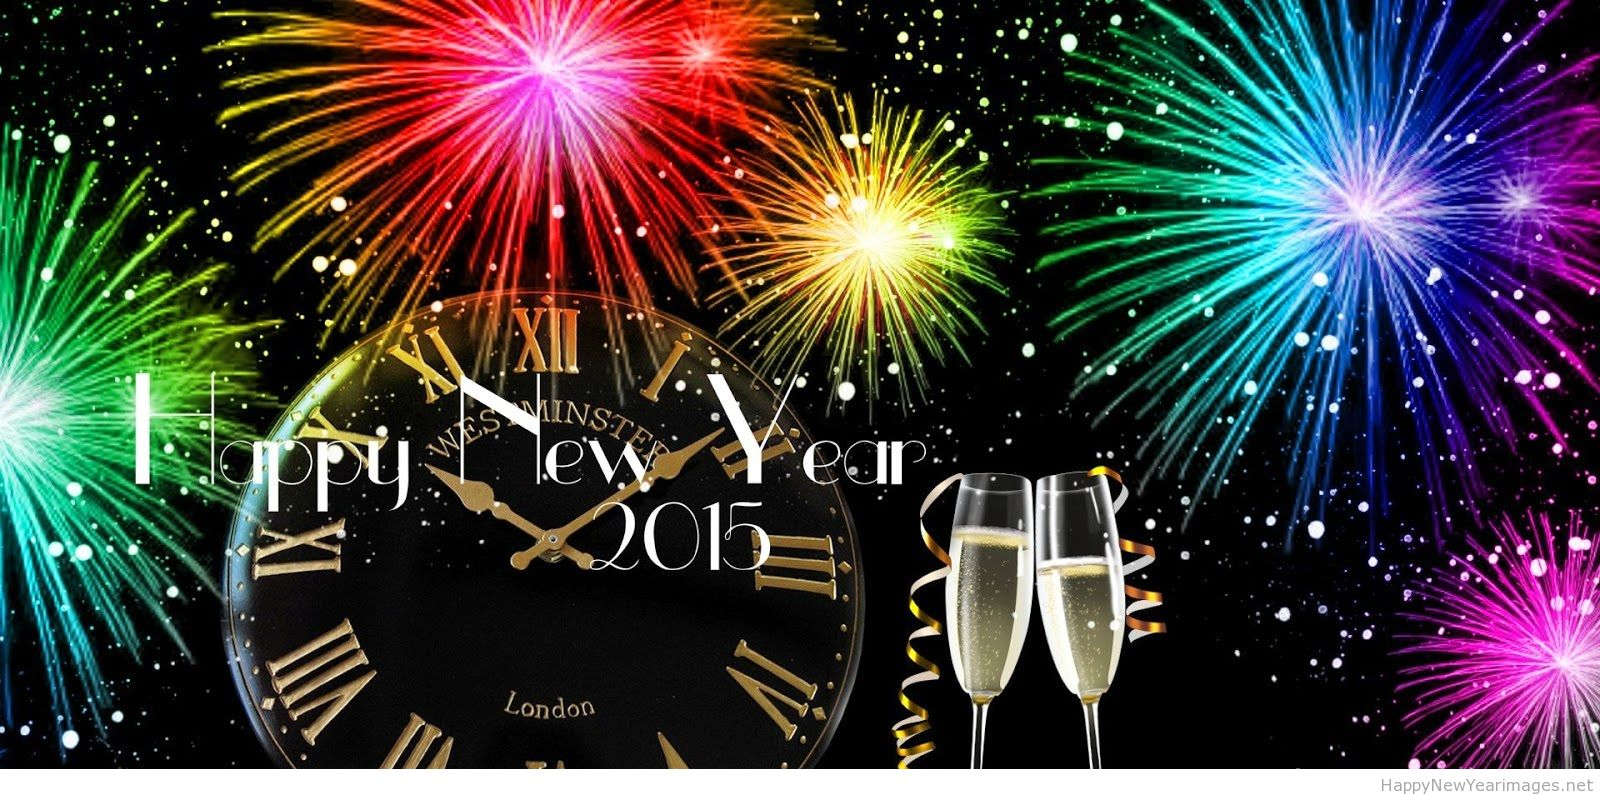 Happy New Year 2014 Live Wallpaper - Happy New Year 2018 Frame , HD Wallpaper & Backgrounds